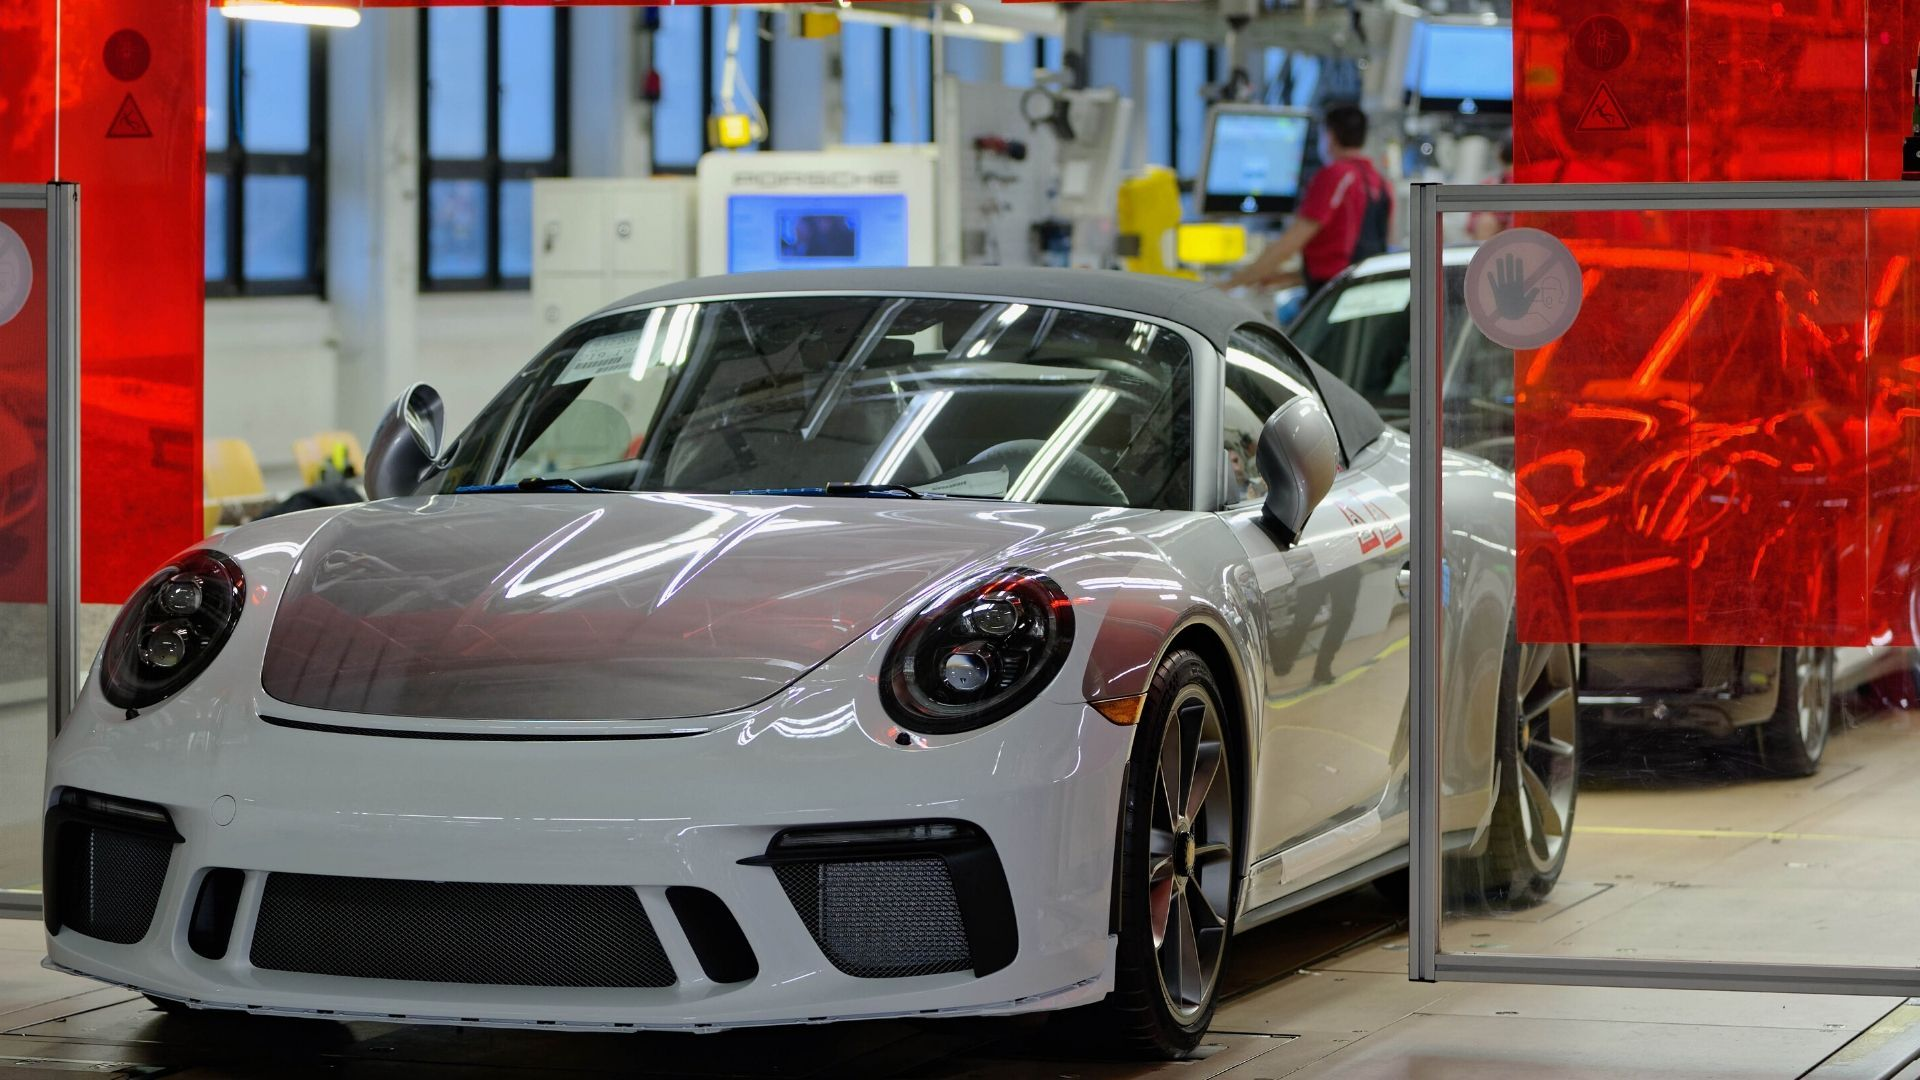 Auctioned Porsche 991 Generates $1 Million For US COVID-19 Relief